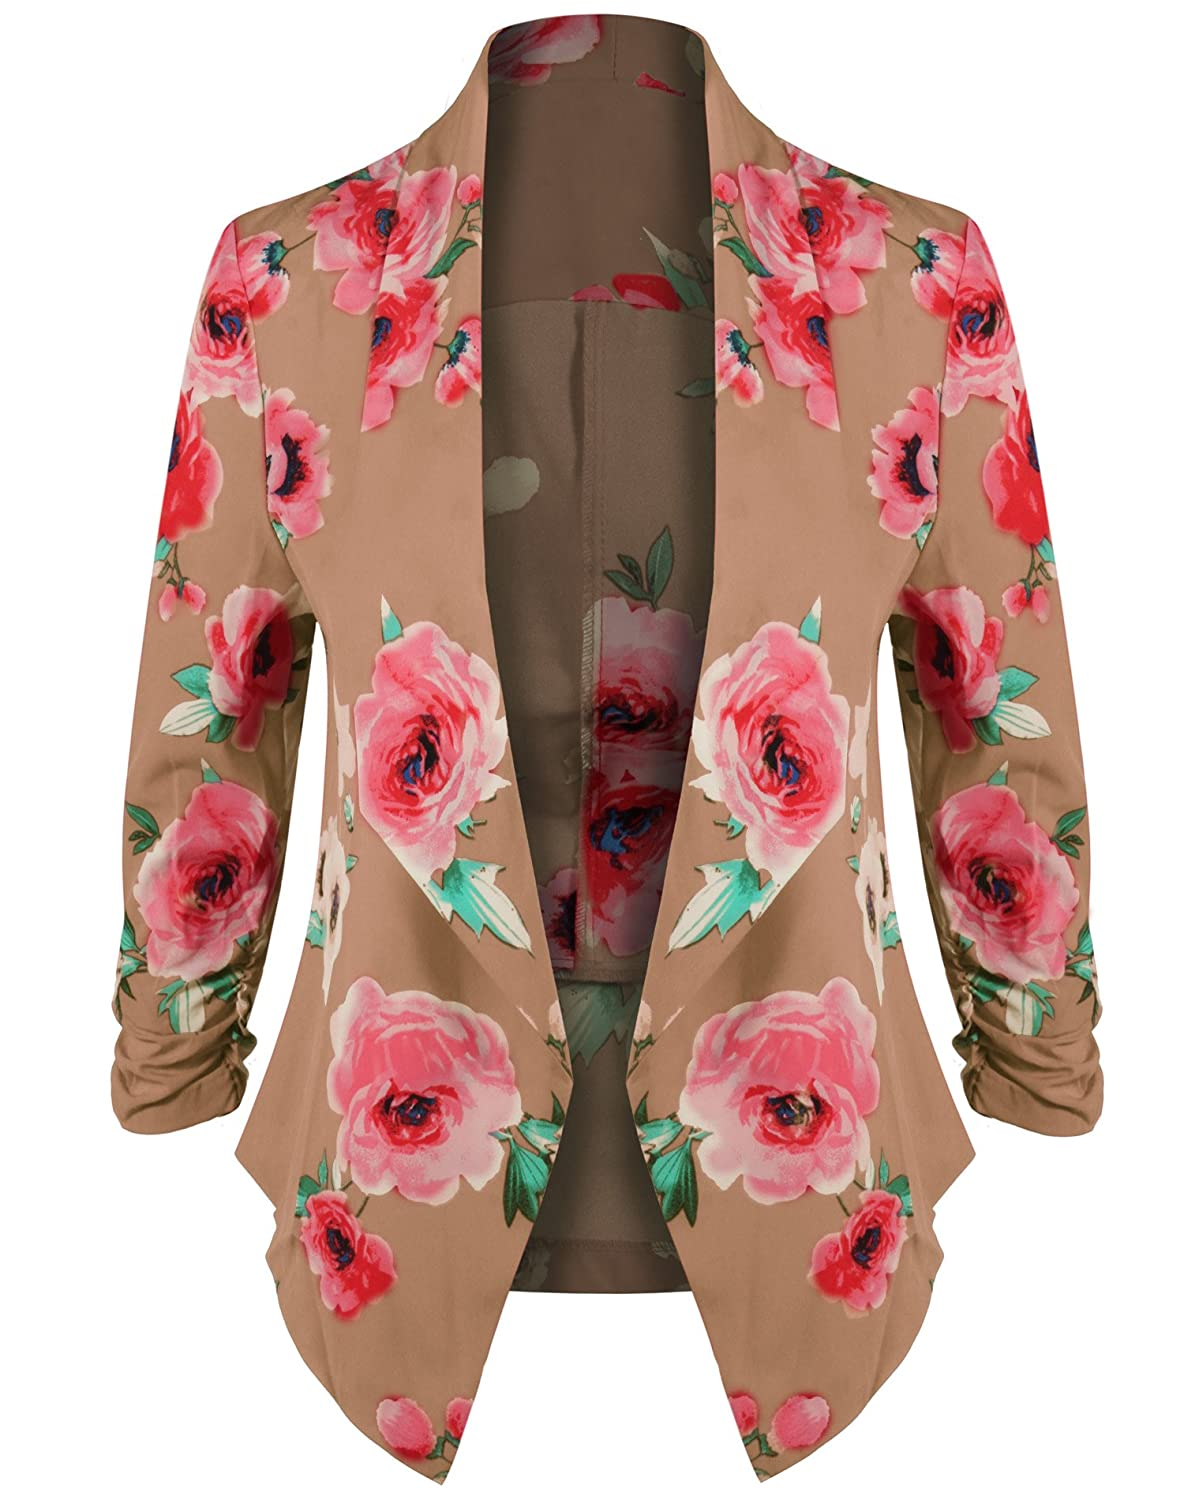 HOT FROM HOLLYWOOD Women's Lightweight Open Cardigan Blazer Jacket 3/4 Sleeves in Solid Floral Print 7037